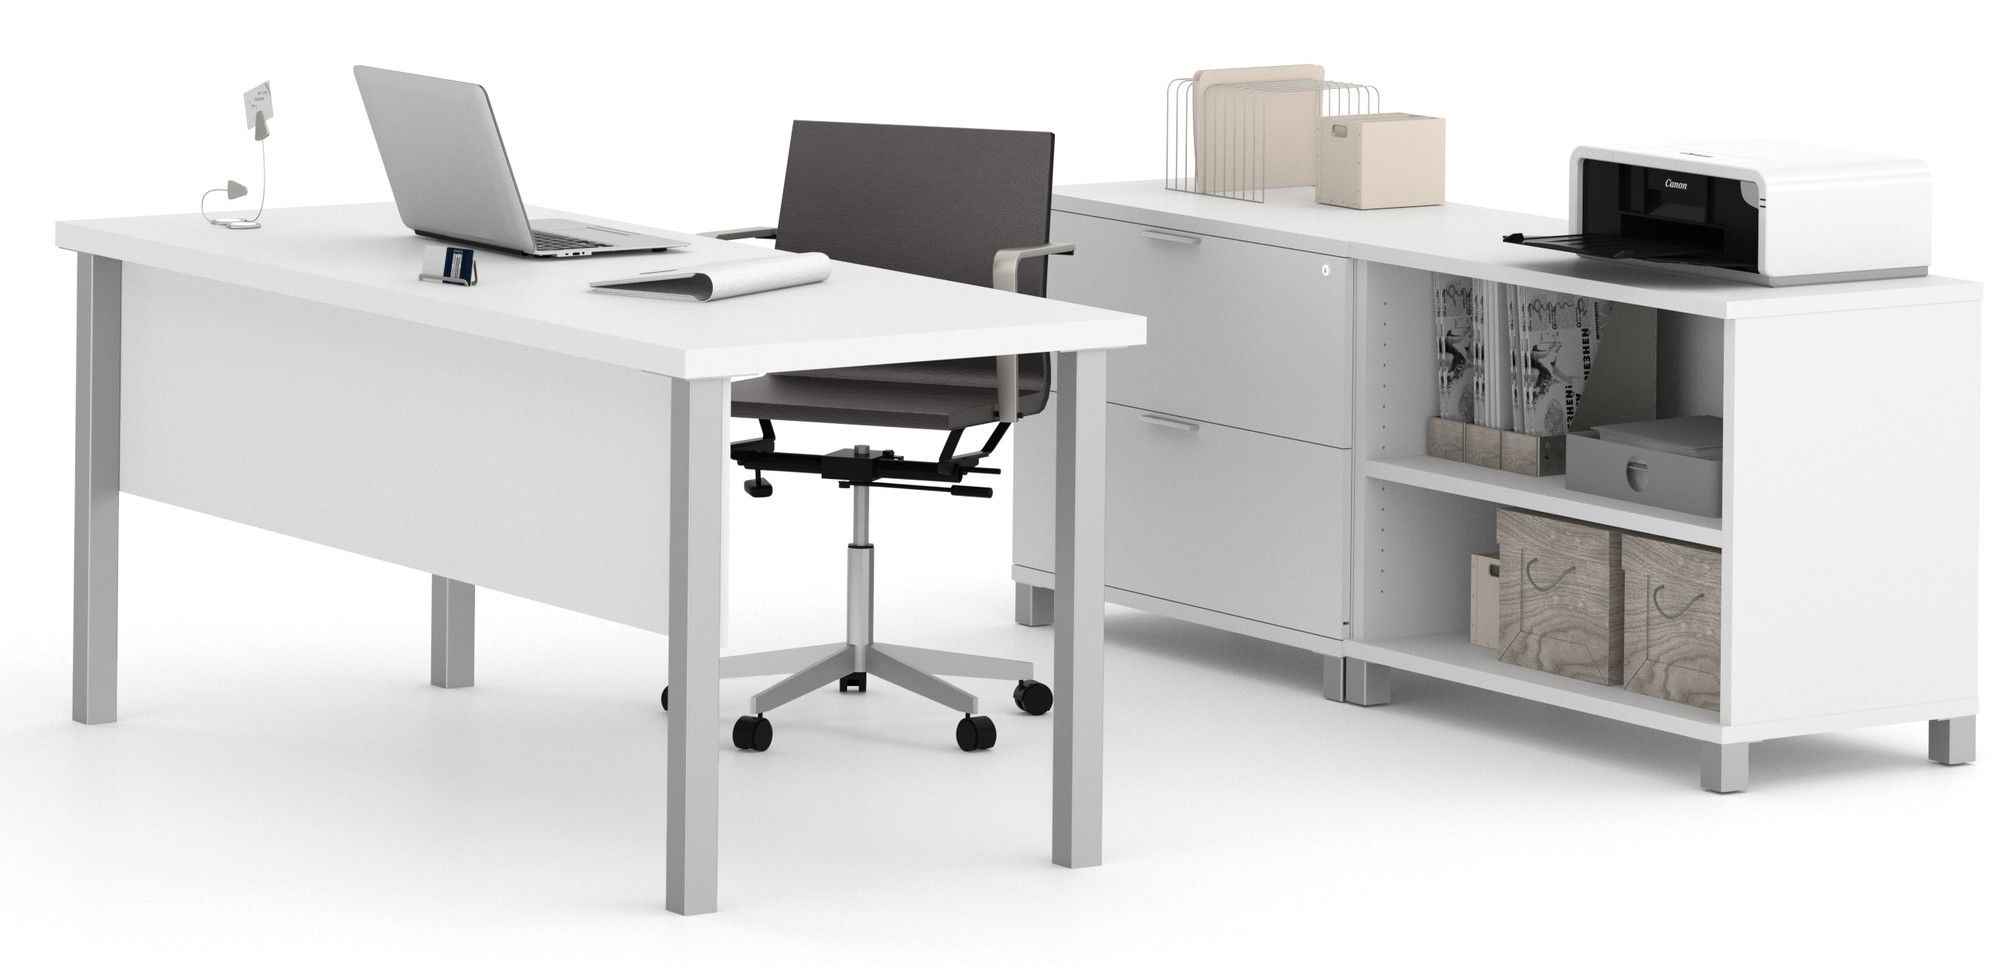 Executive office table with glass top ariana piece ushape desk office suite  products  pinterest